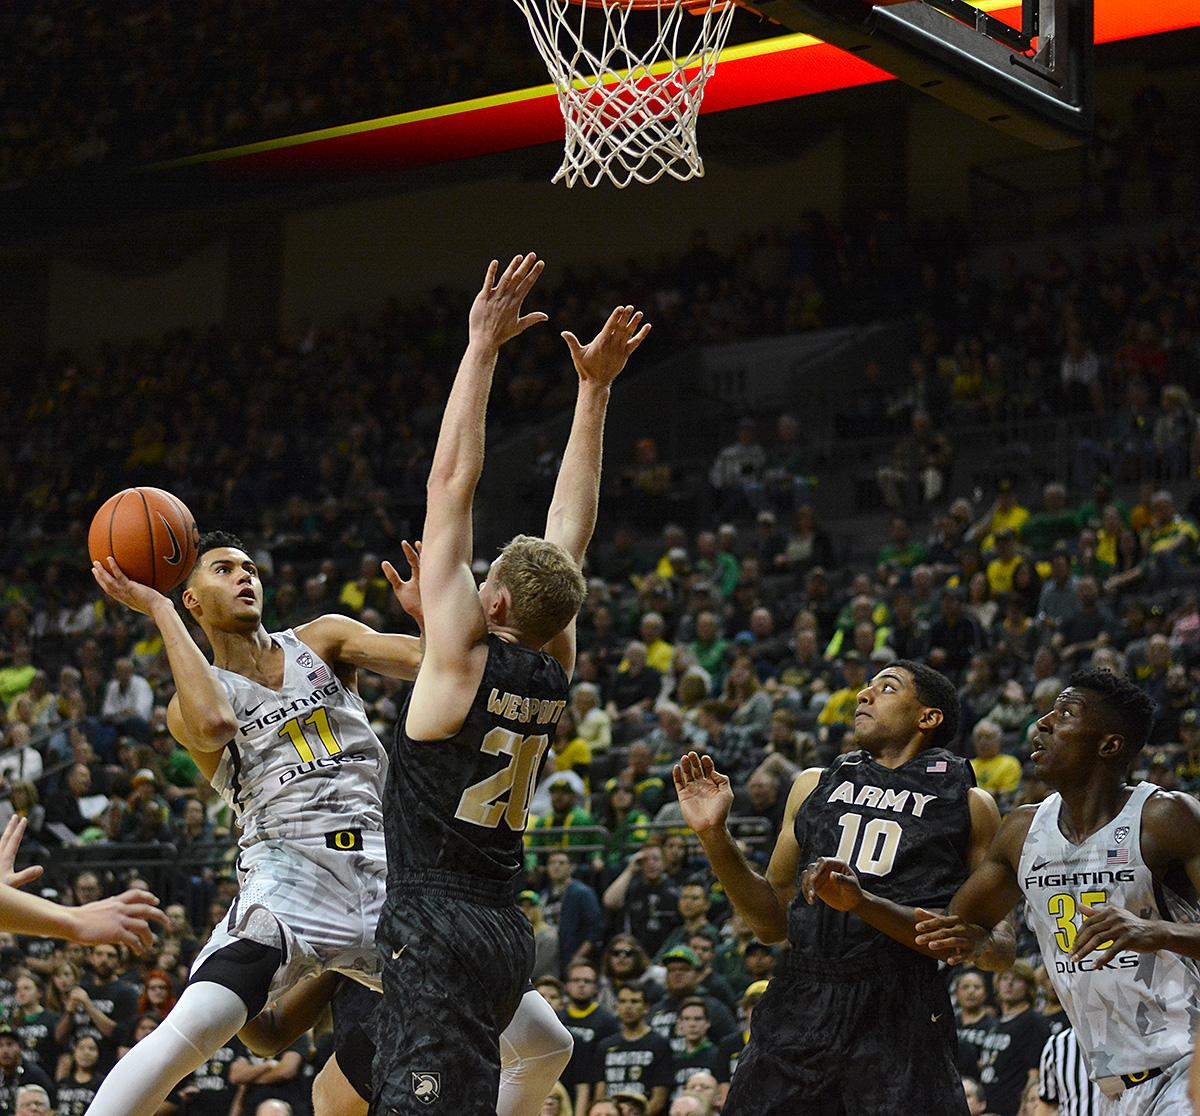 Army's Mac Hoffman (#20) unsuccessfully attempts to block Ducks' Keith Smith's (#11) shot. In front of a sold out crowd, Oregon defeated Army 91-77 on opening night. Photo by Jacob Smith, Oregon News Lab